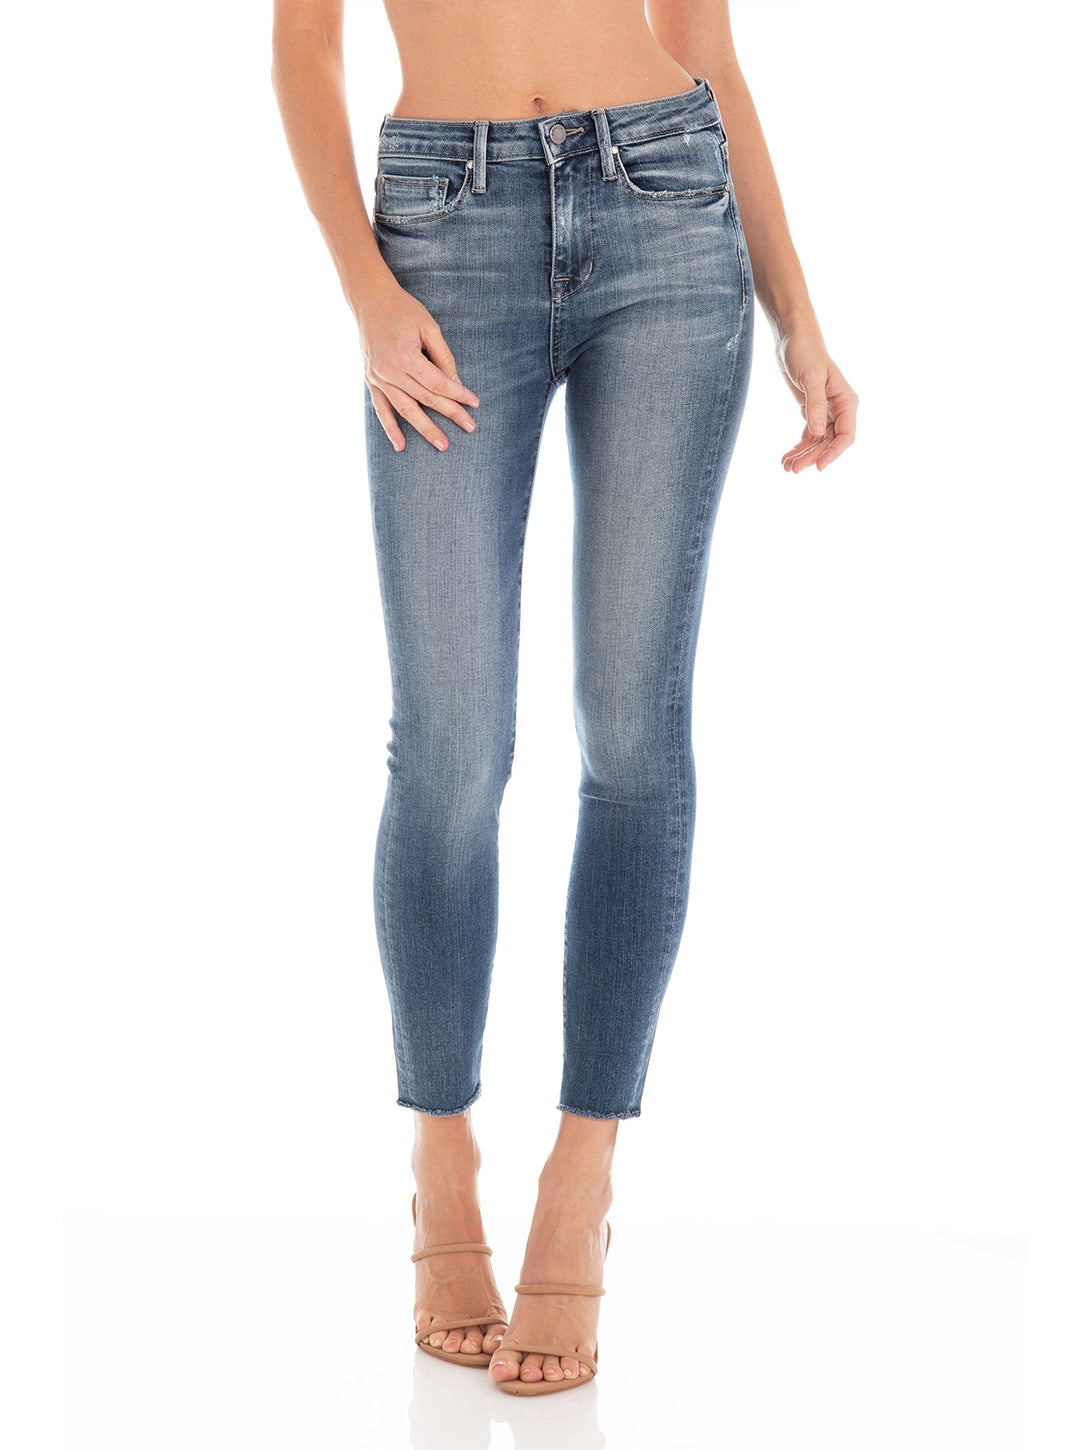 Gwen High Rise Skinny Jean - Soho Vintage-Fidelity Denim-Over the Rainbow